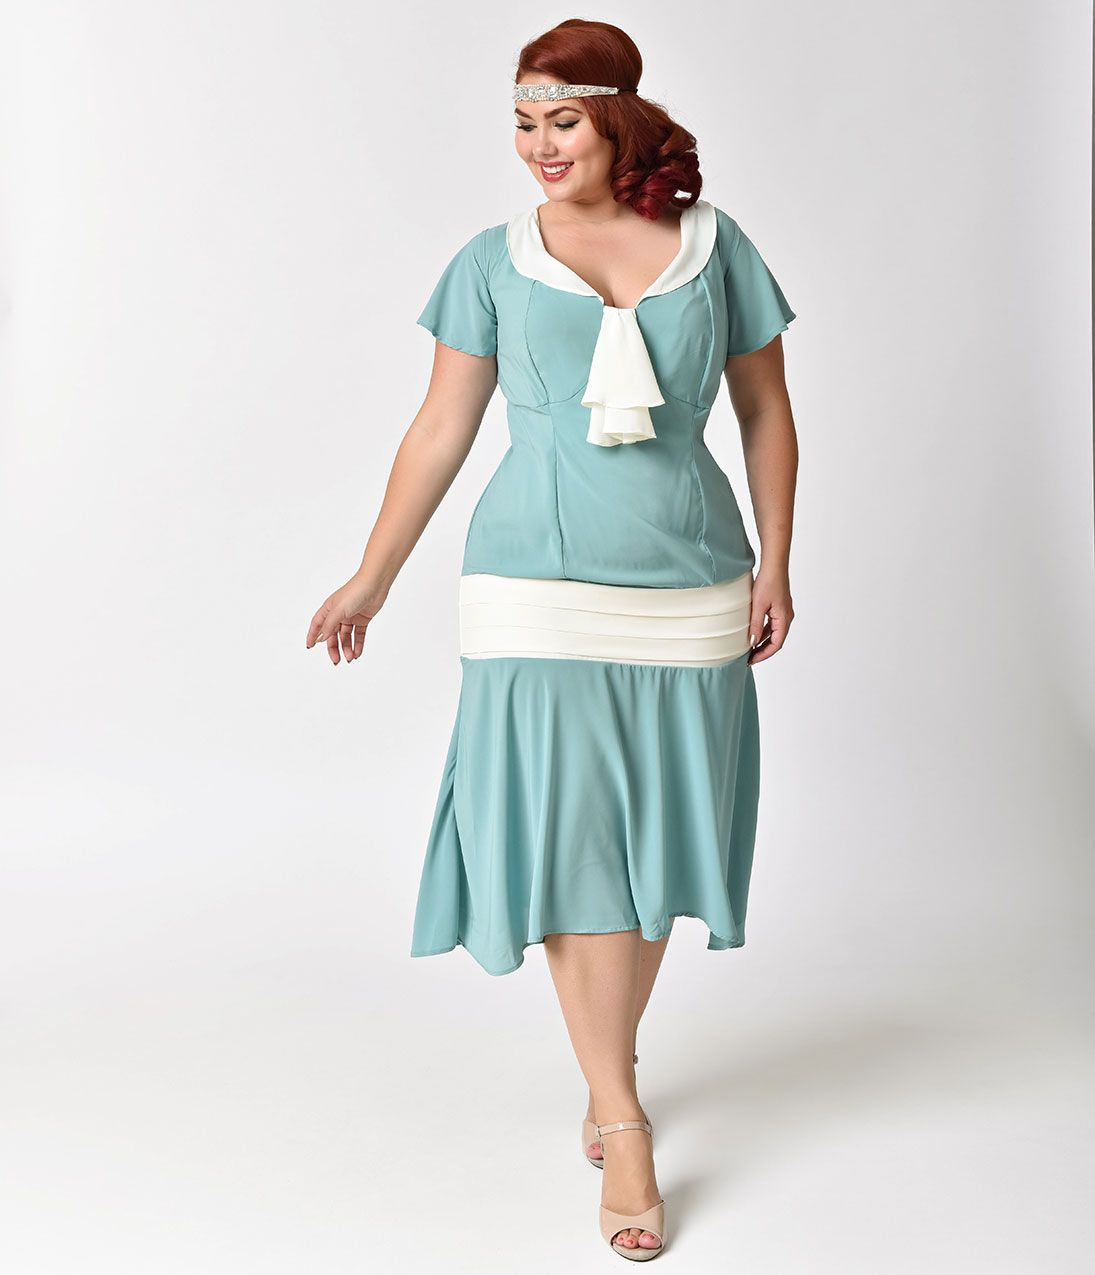 Plus Size Vintage Dresses, Plus Size Retro Dresses | Flappers, 1920s ...